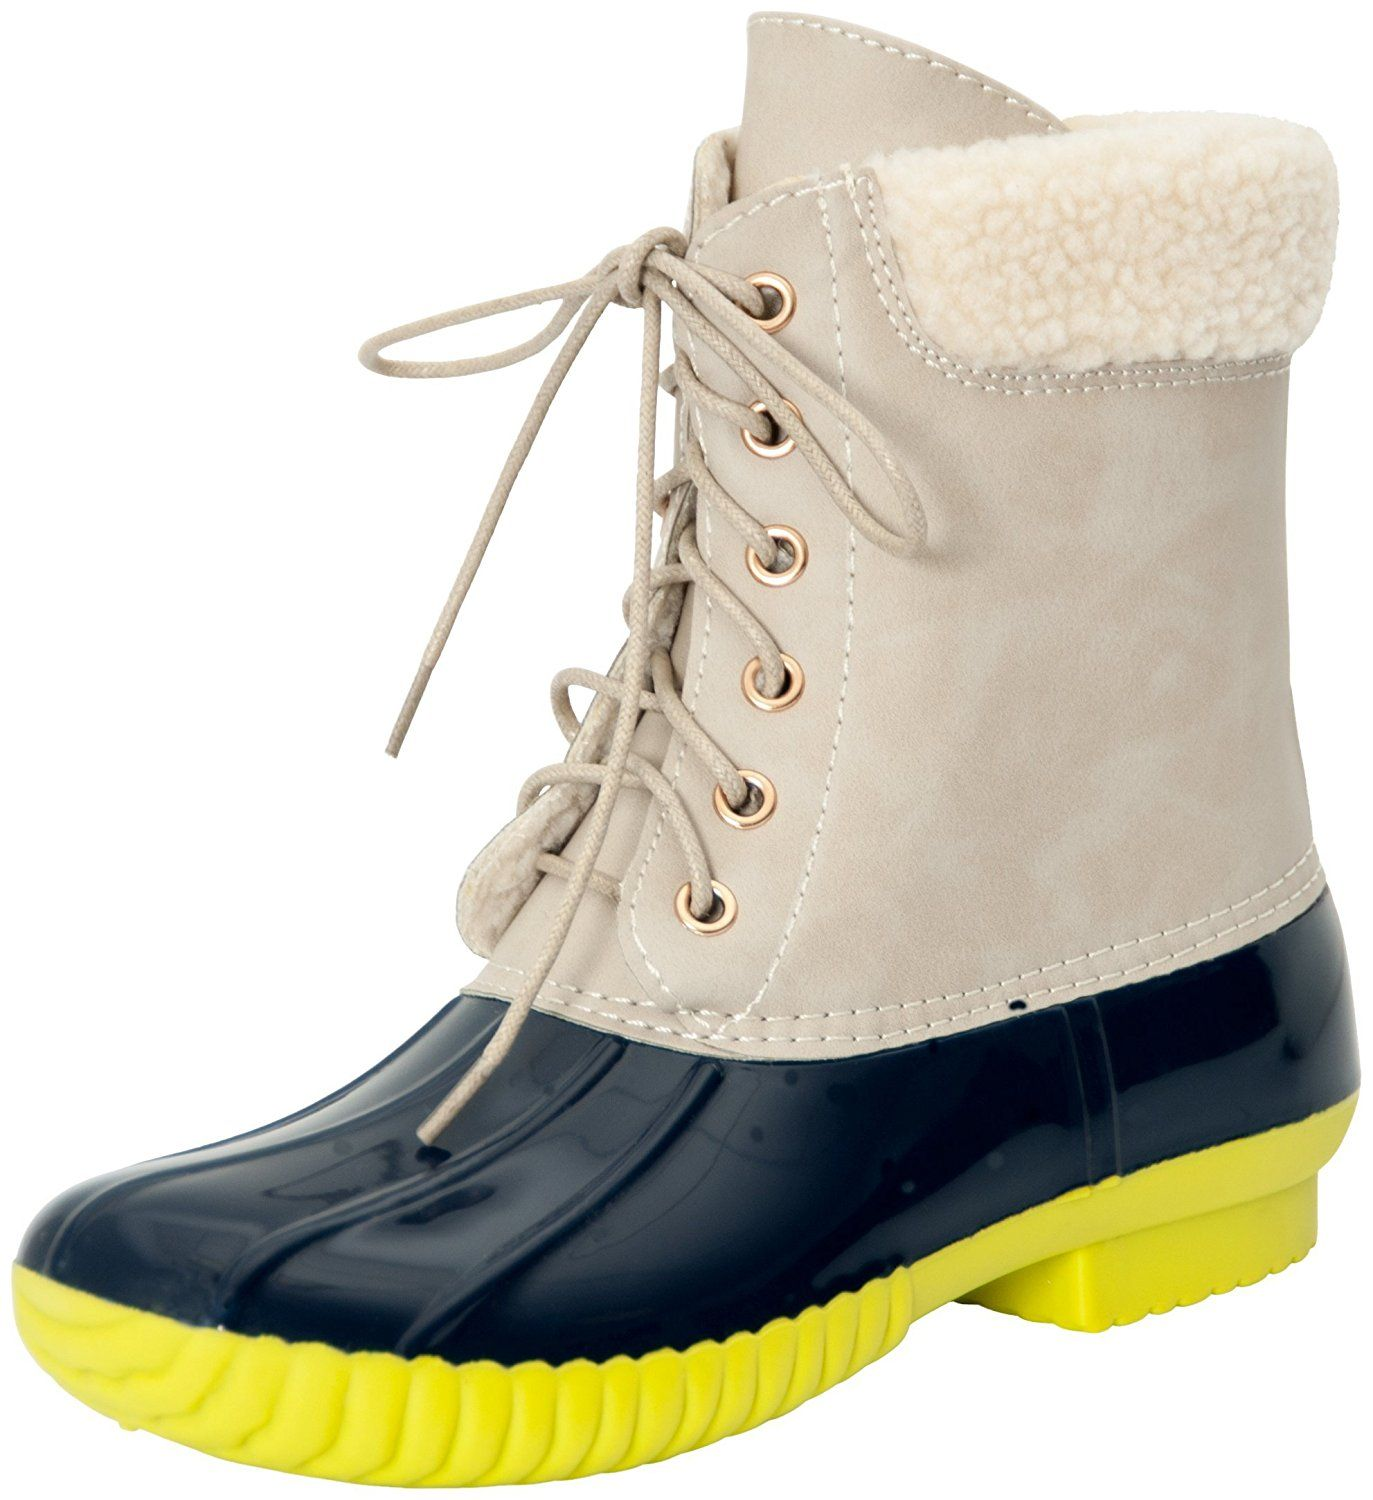 bc16b9fac Adriana Women's DYLAN-60 Faux Fur Lined Two Tone Rain Duck Boots --  Additional details at the pin image, click it : Rain boots